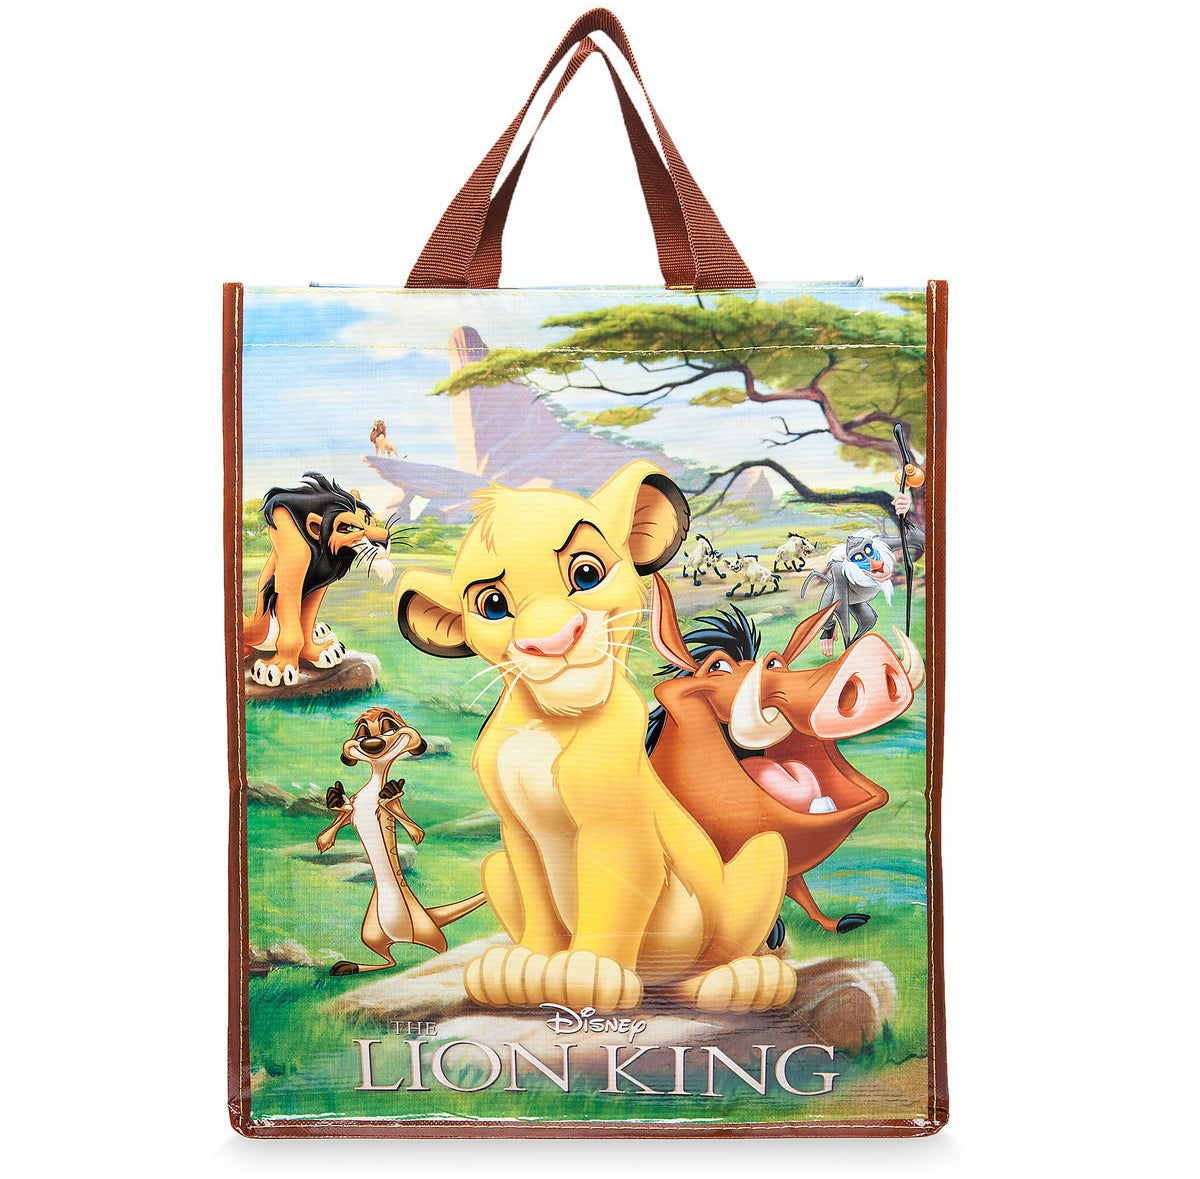 Get it from Shop Disney for $2.95.